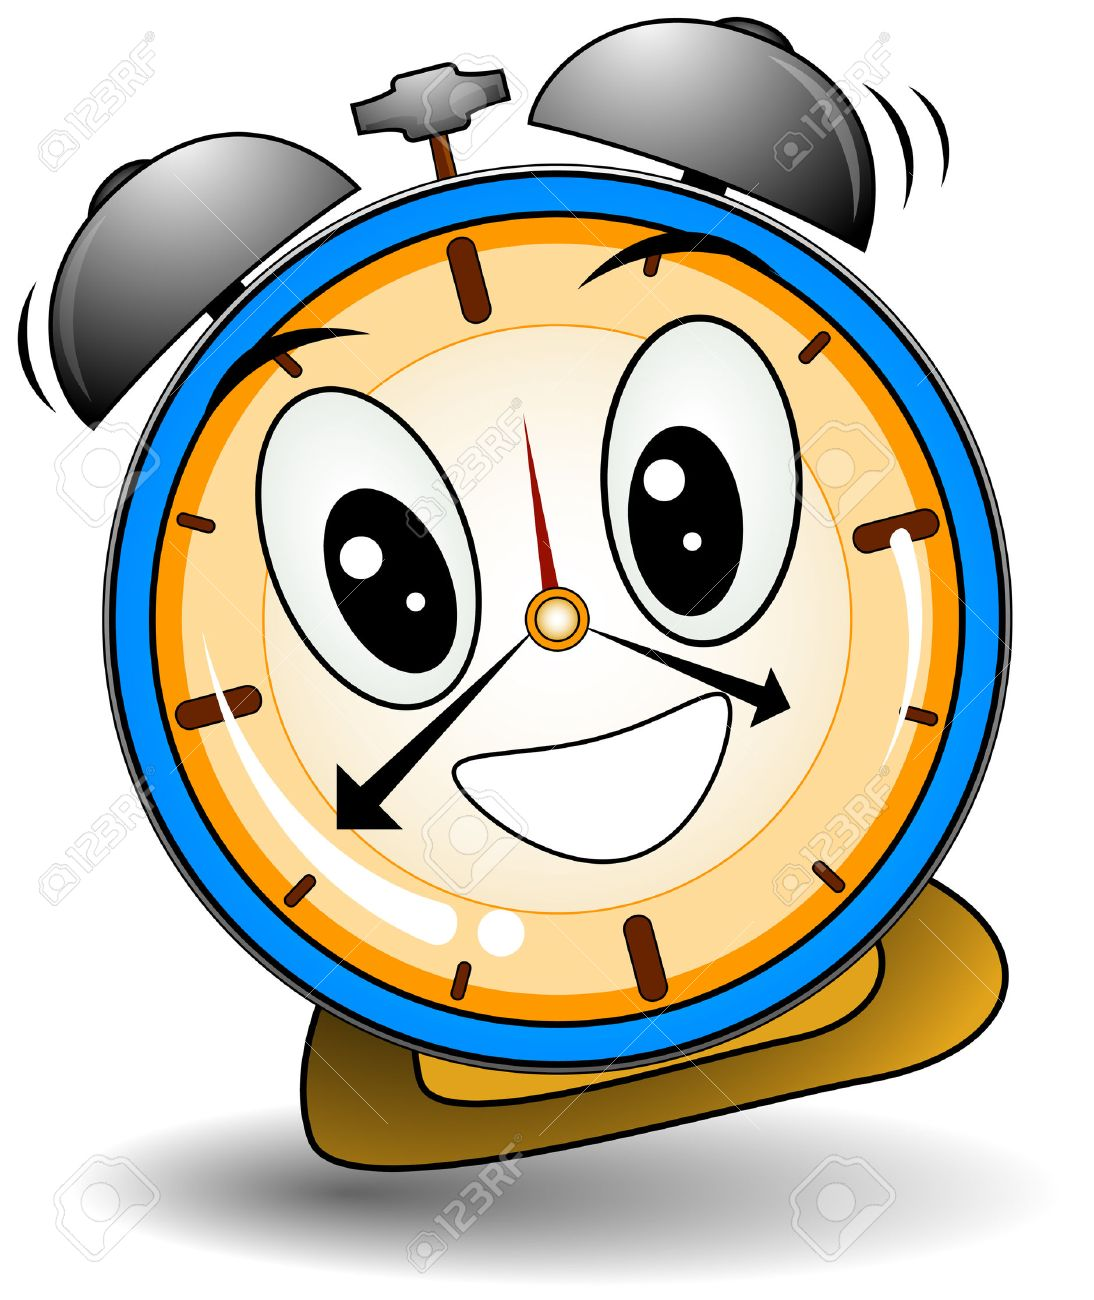 ringing alarm clock royalty free cliparts vectors and stock rh 123rf com clip art of clocks clip art of locks